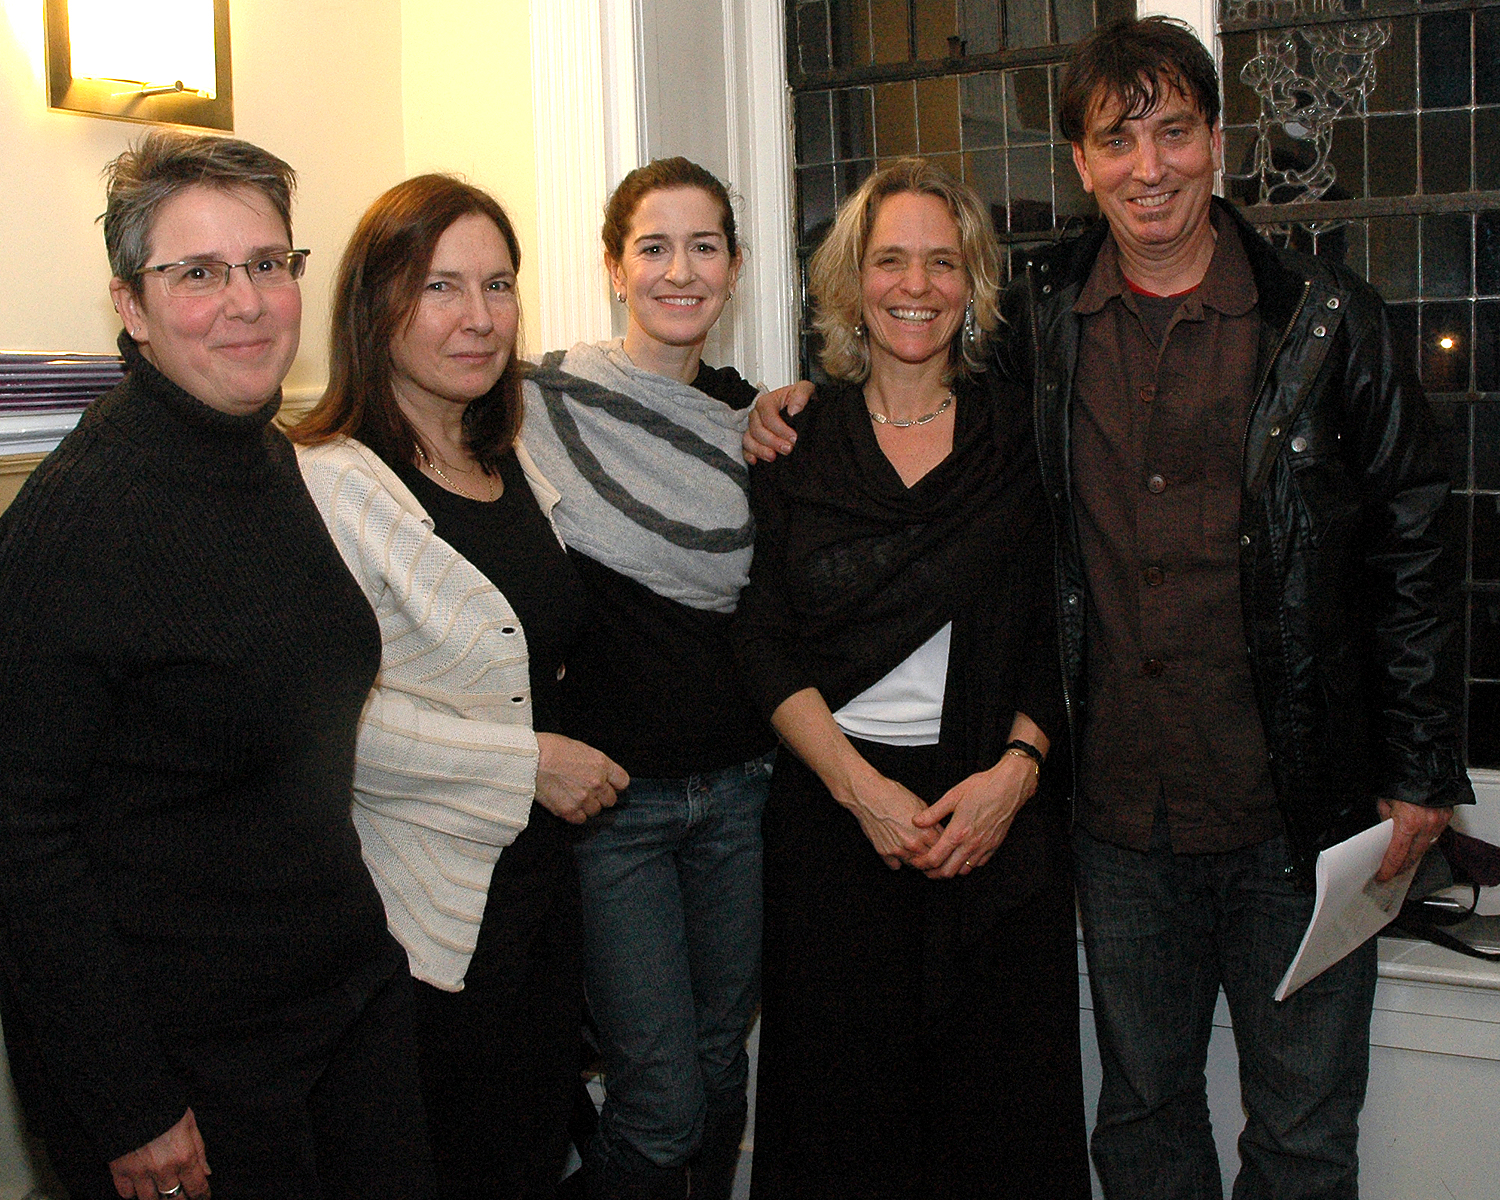 Gerry Gomez Pearlberg, Catherine Ventura, Jessica Greer-Morris, Sharen Duke and Nick Flynn